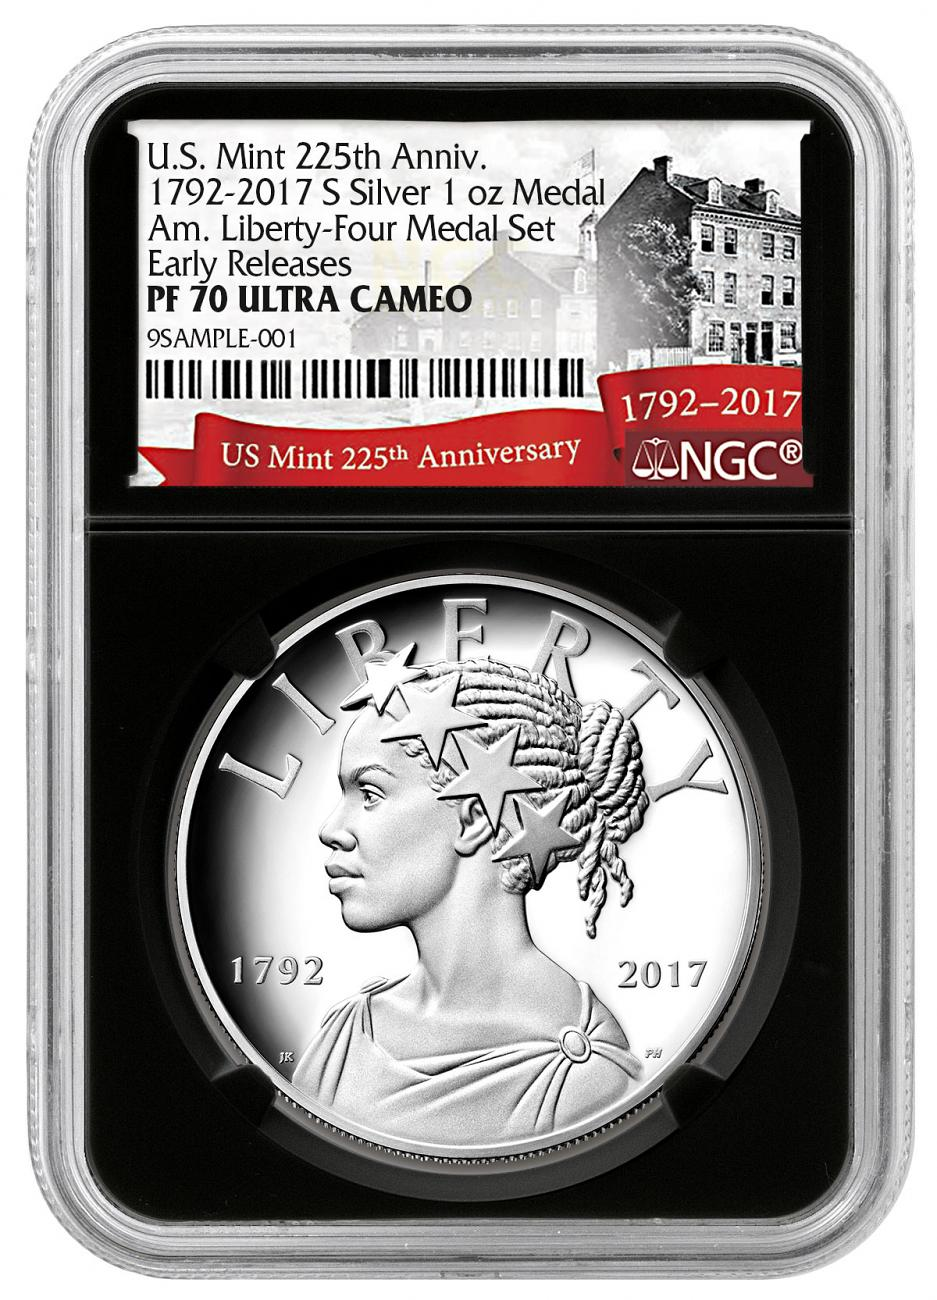 2017-S United States American Liberty 225th Anniversary 1 oz Silver Proof Medal NGC PF70 ER Black Core Holder Exclusive U.S. Mint 225th Anniversary Label